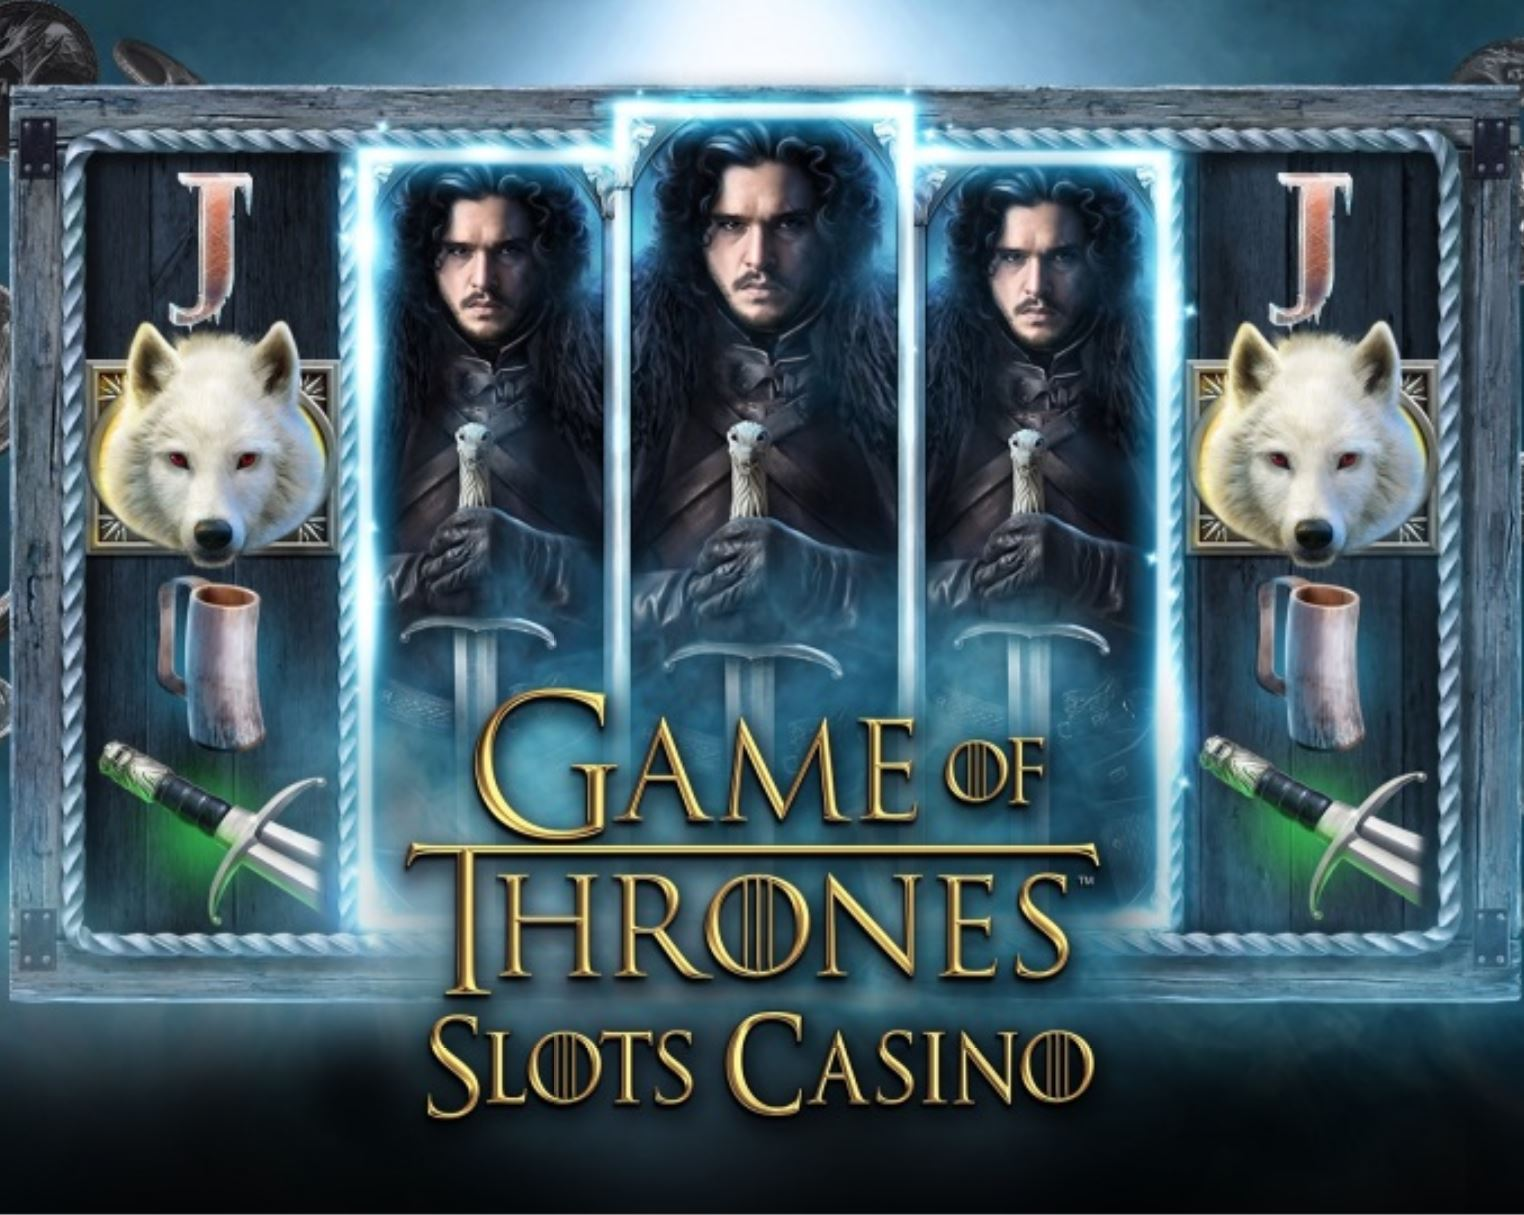 Game of Thorns Slots Bonus Feature and Free Spins